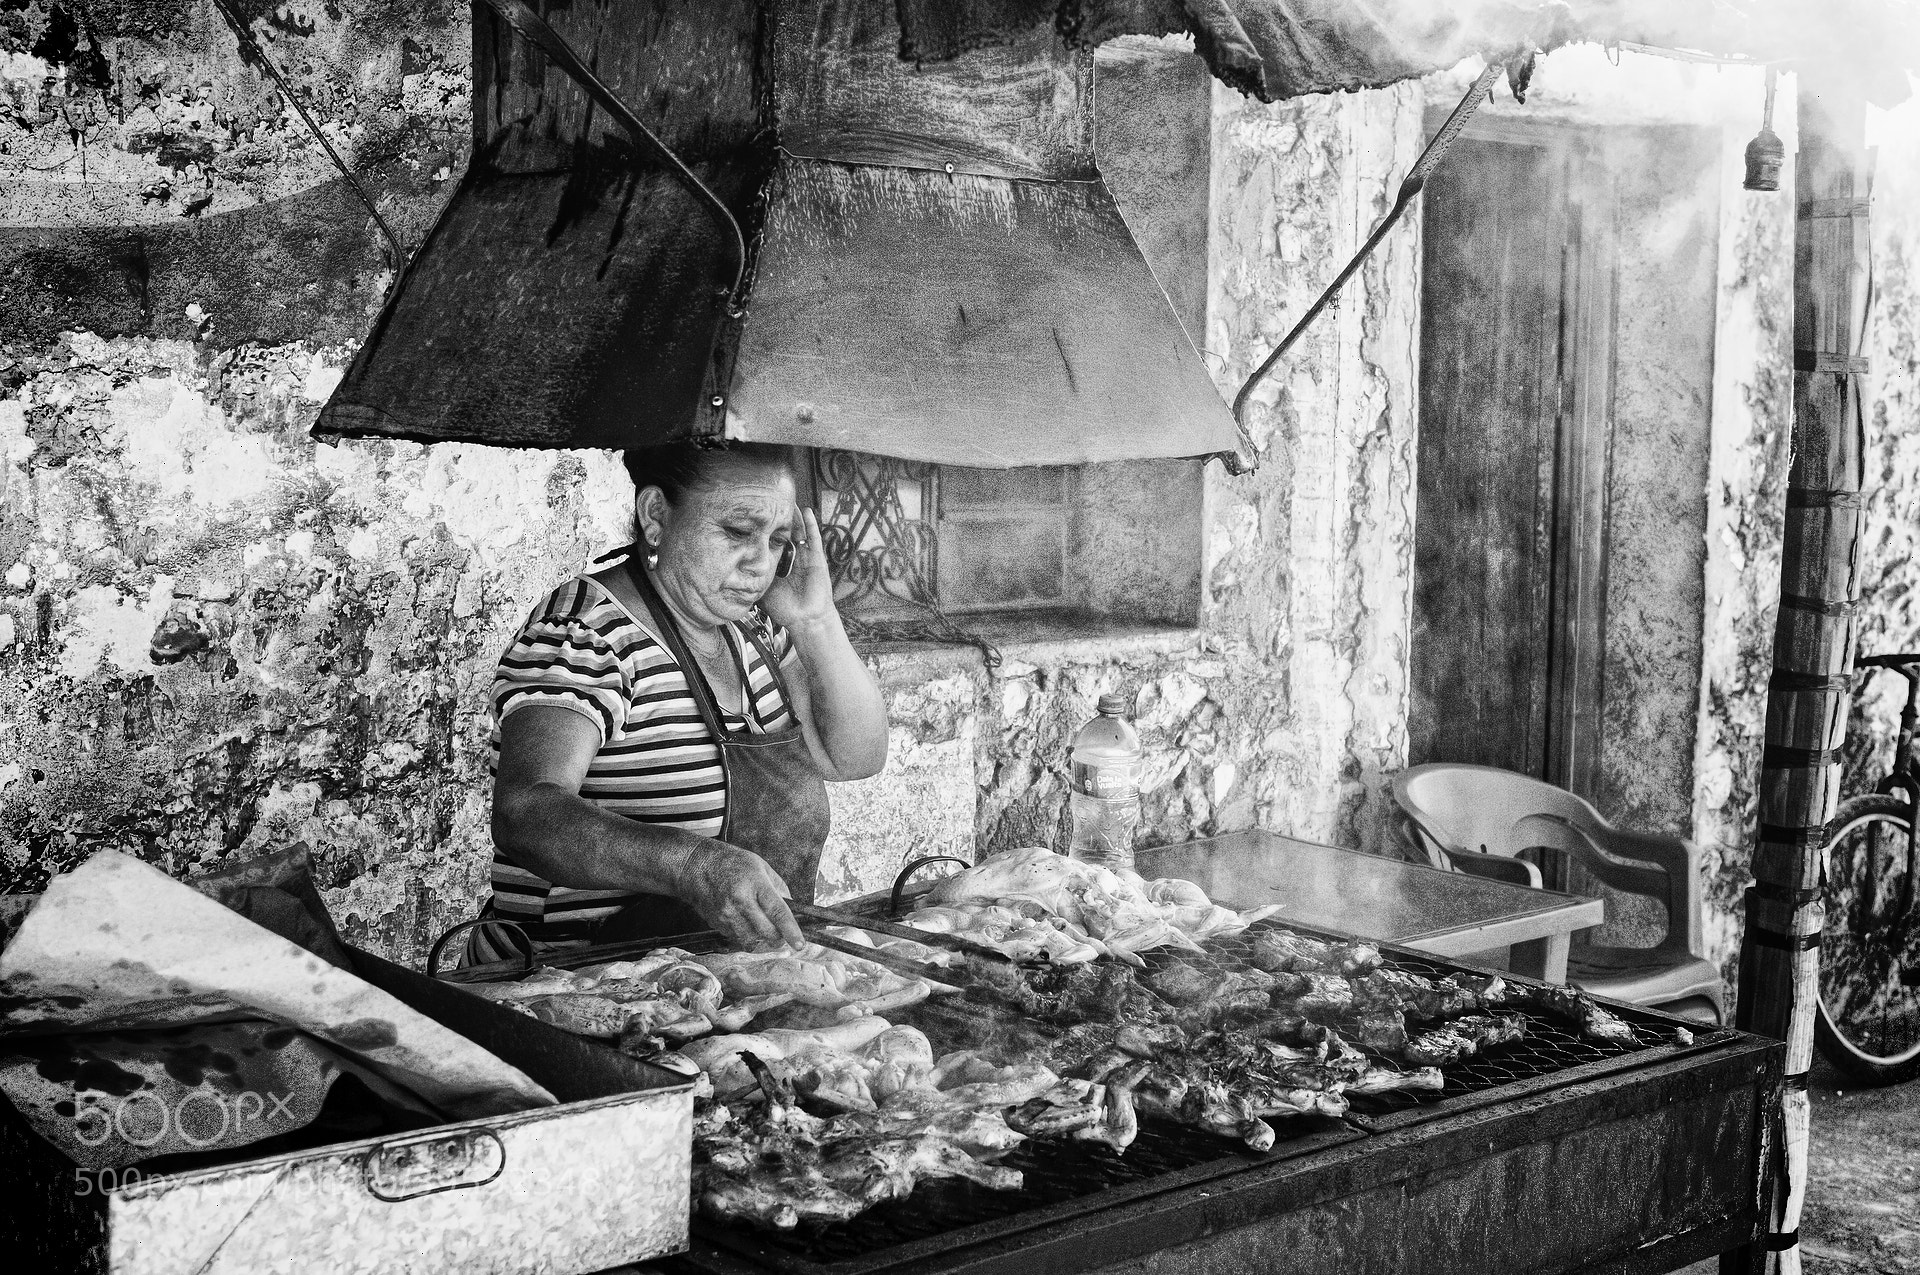 Photograph Street Food by Troy Young on 500px